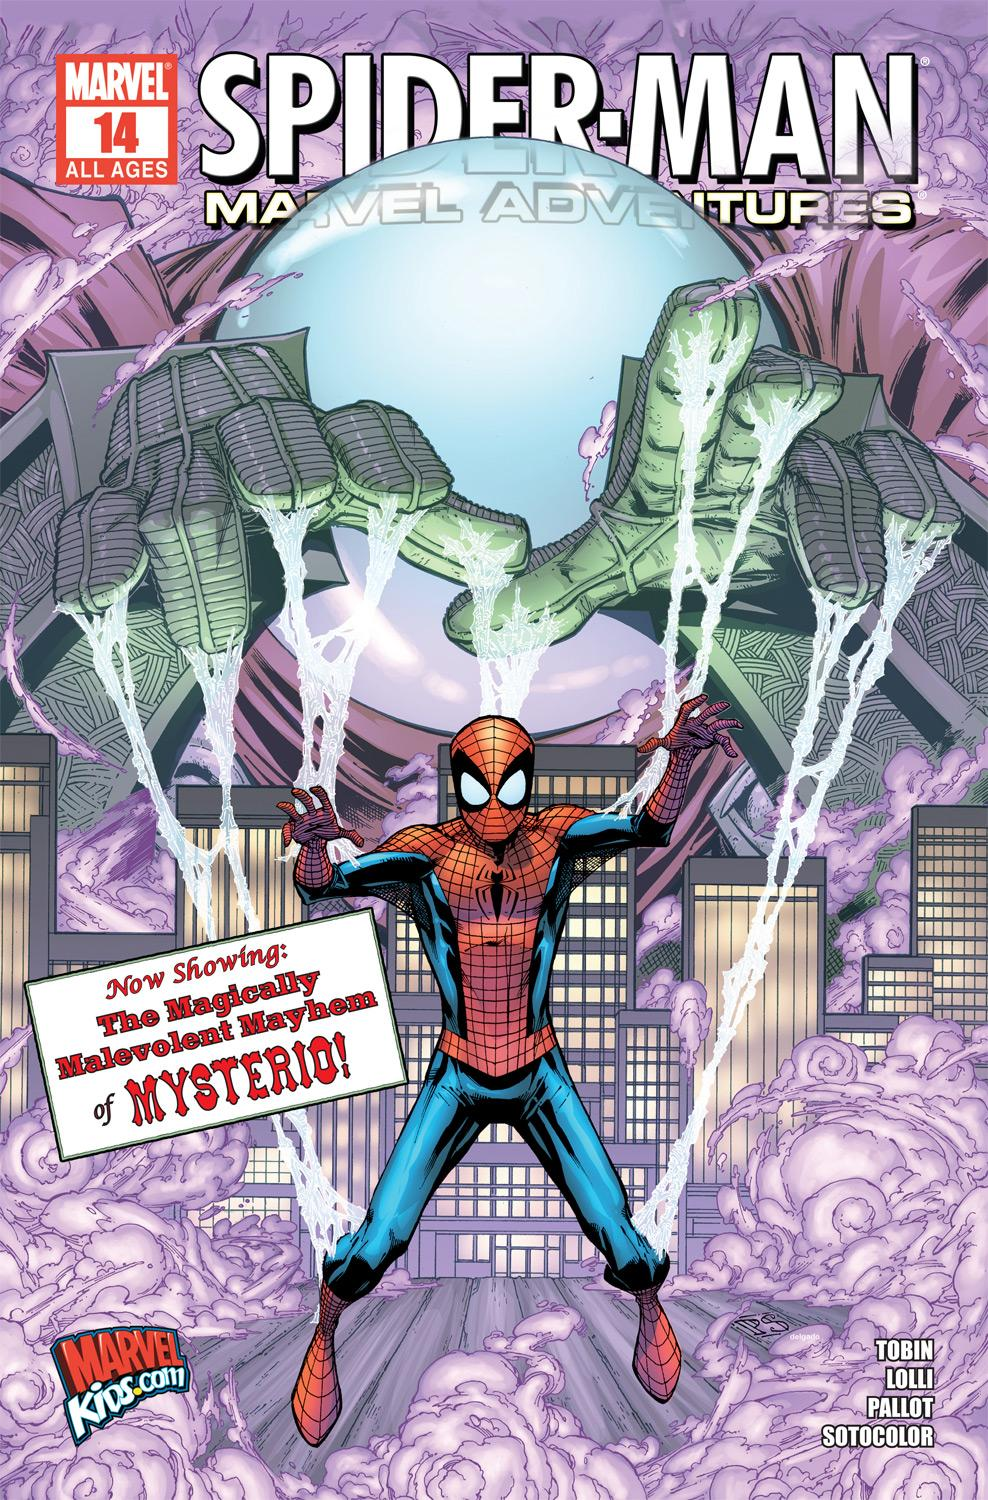 Marvel Adventures Spider-Man (2010) #14